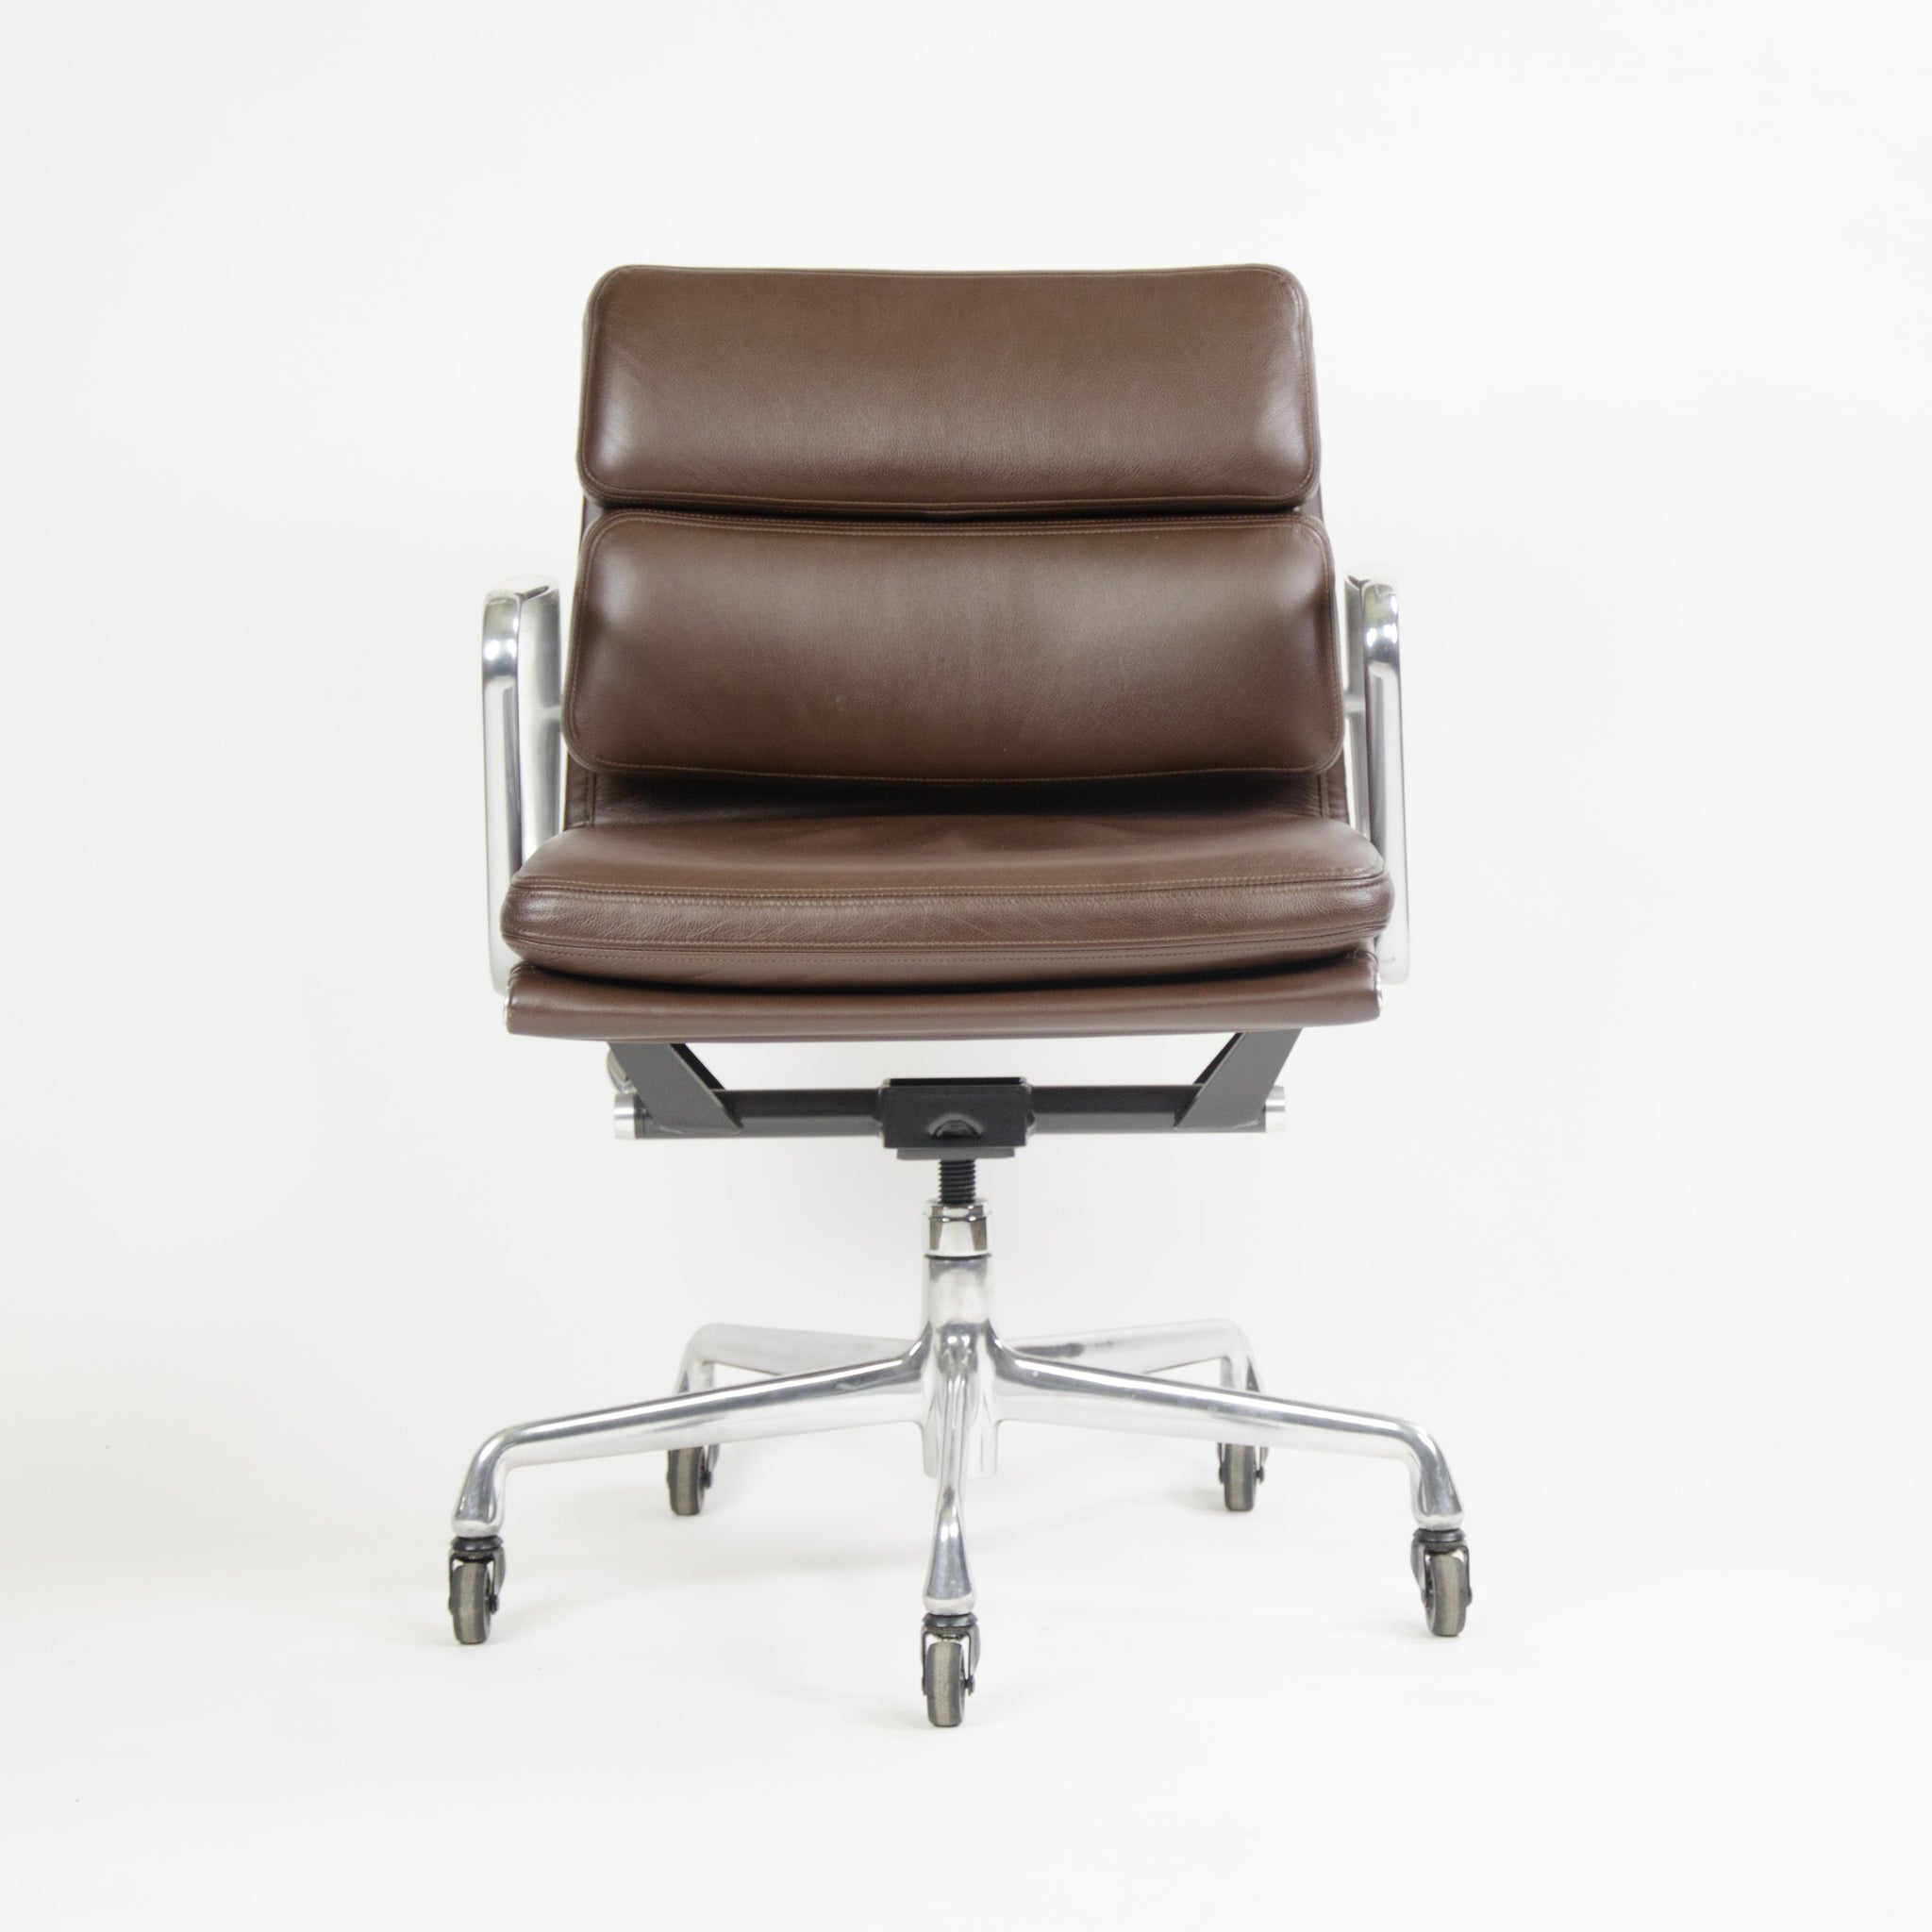 SOLD Herman Miller Eames Soft Pad Aluminum Group Chair Brown Leather 2006 2x Avail